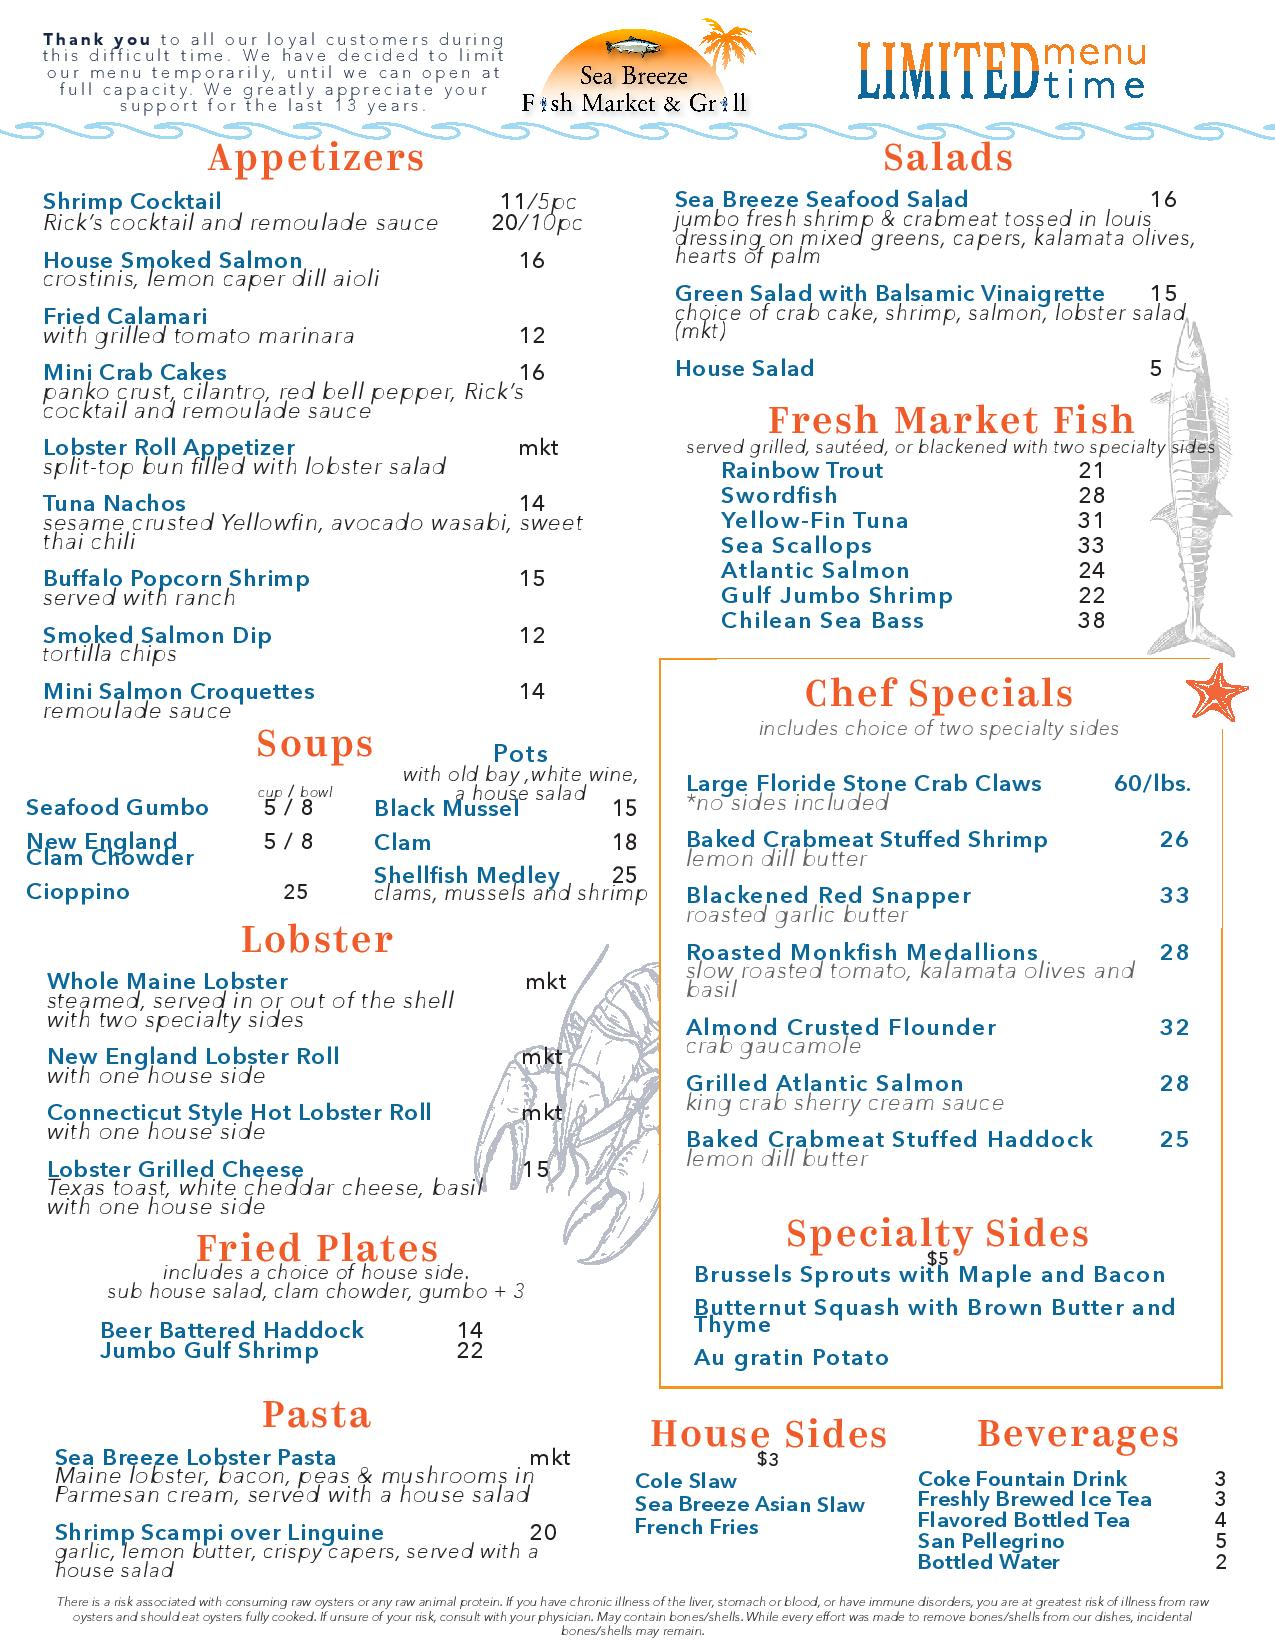 1/28 Updated Menu